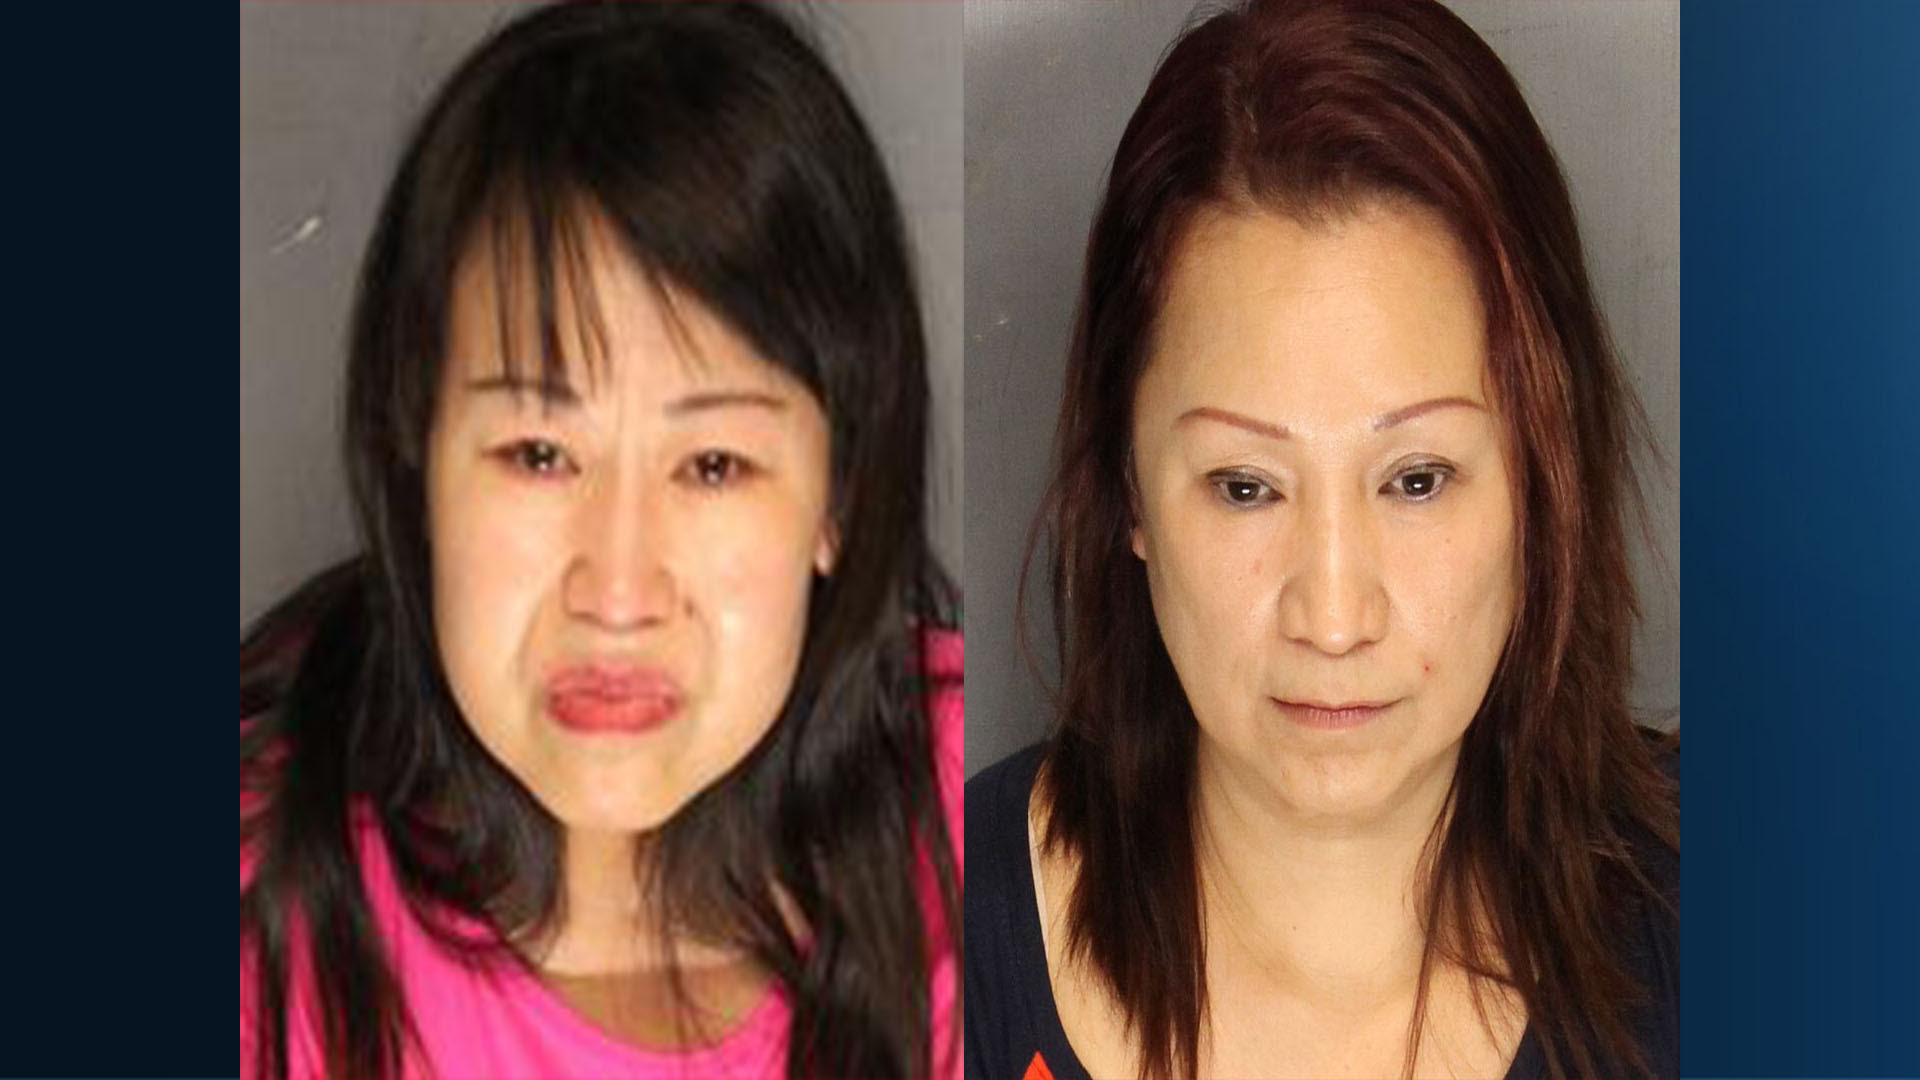 Massage therapists arrested in prostitution sting | ABC10.com